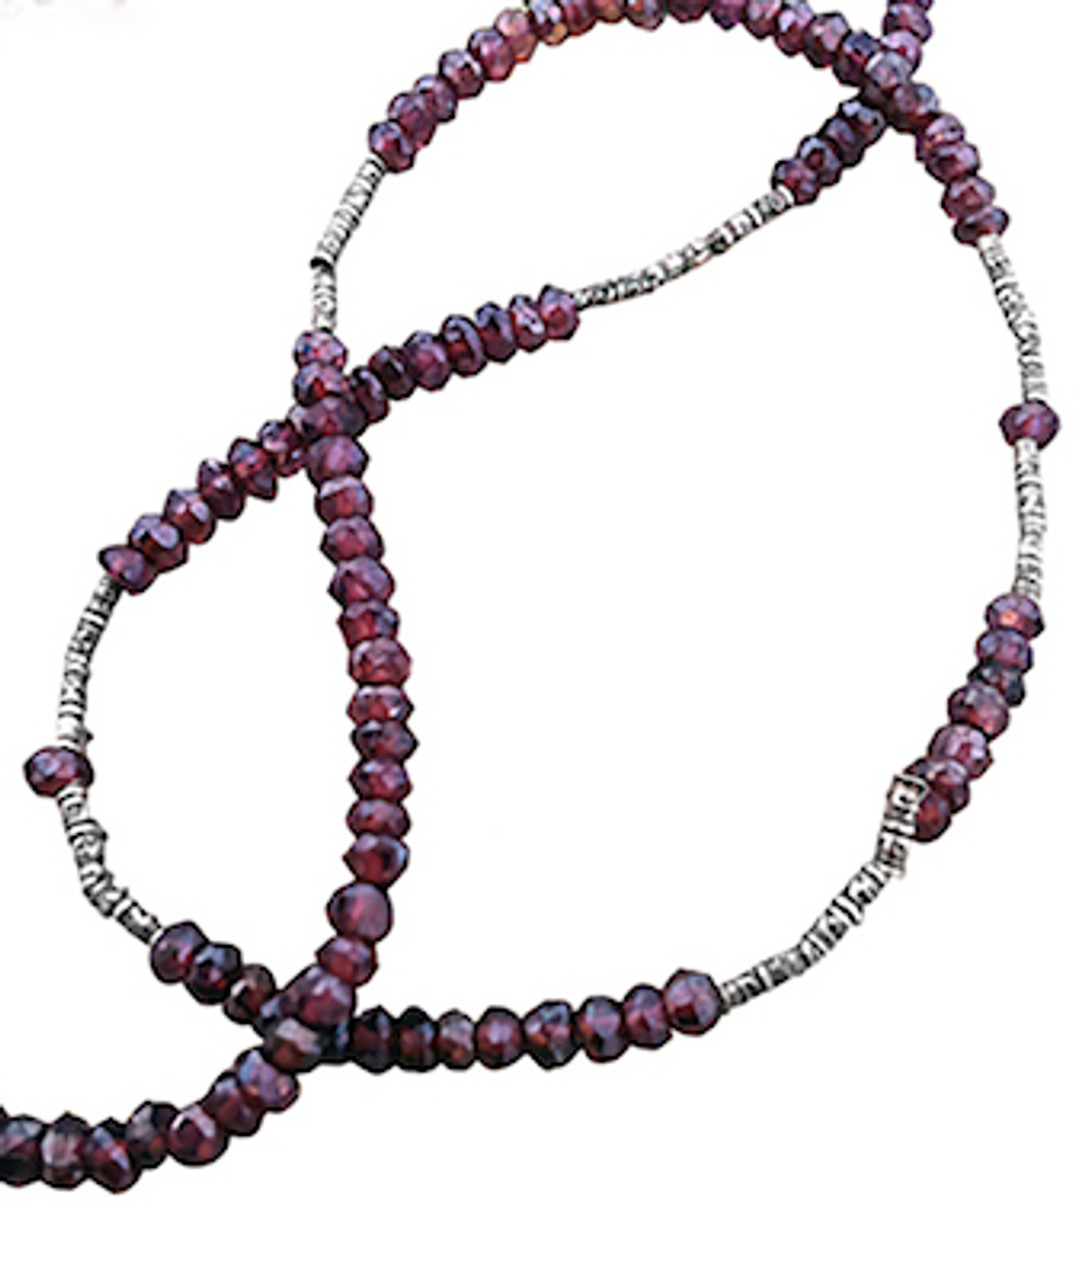 Positive Energy Garnets are January's Birthstone